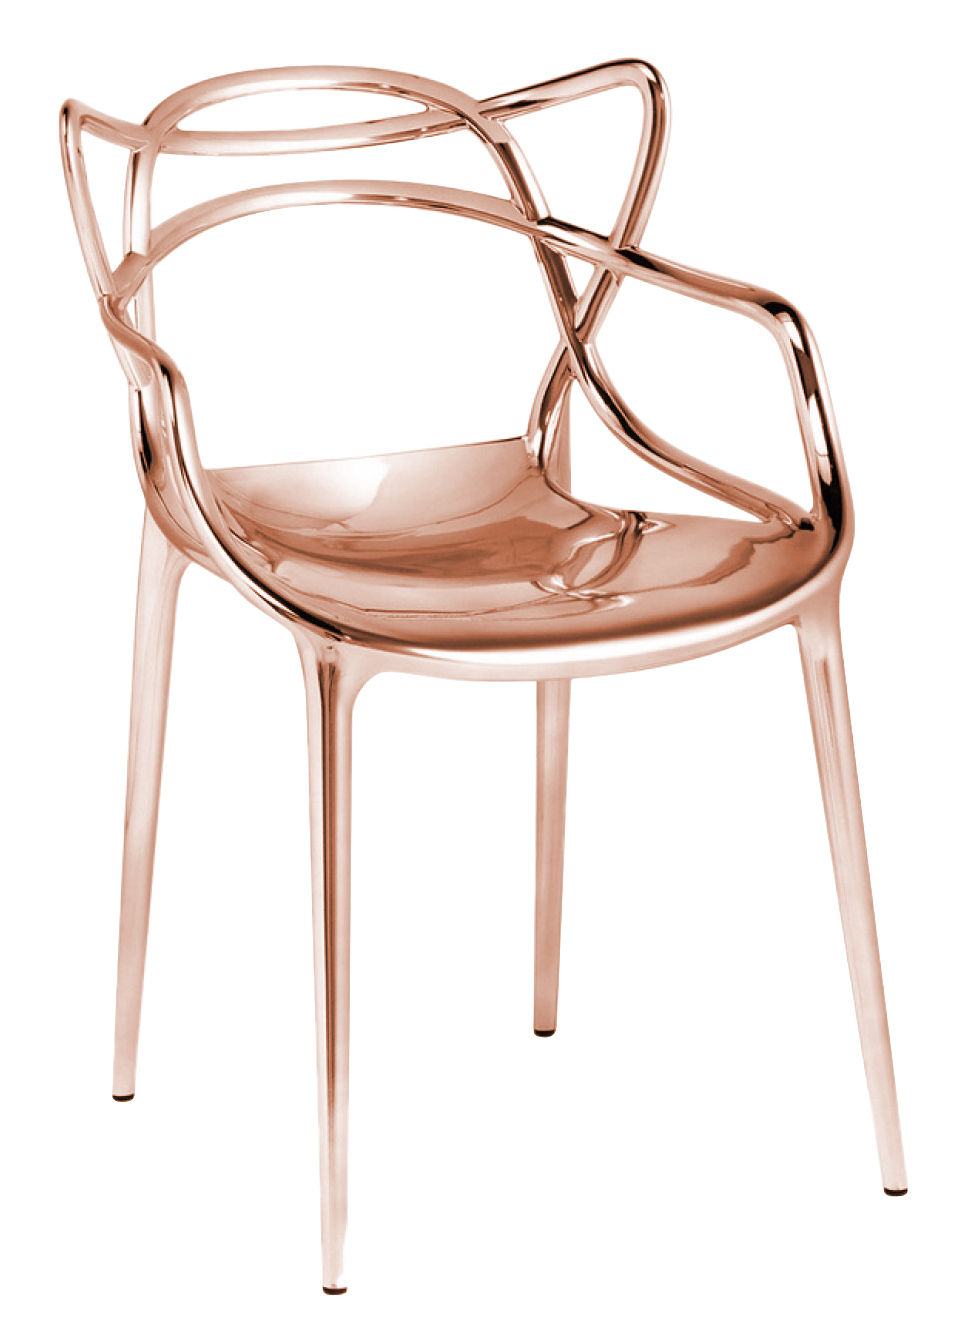 Furniture - Chairs - Masters Stackable armchair - Metallised by Kartell - Copper - Metallic ABS